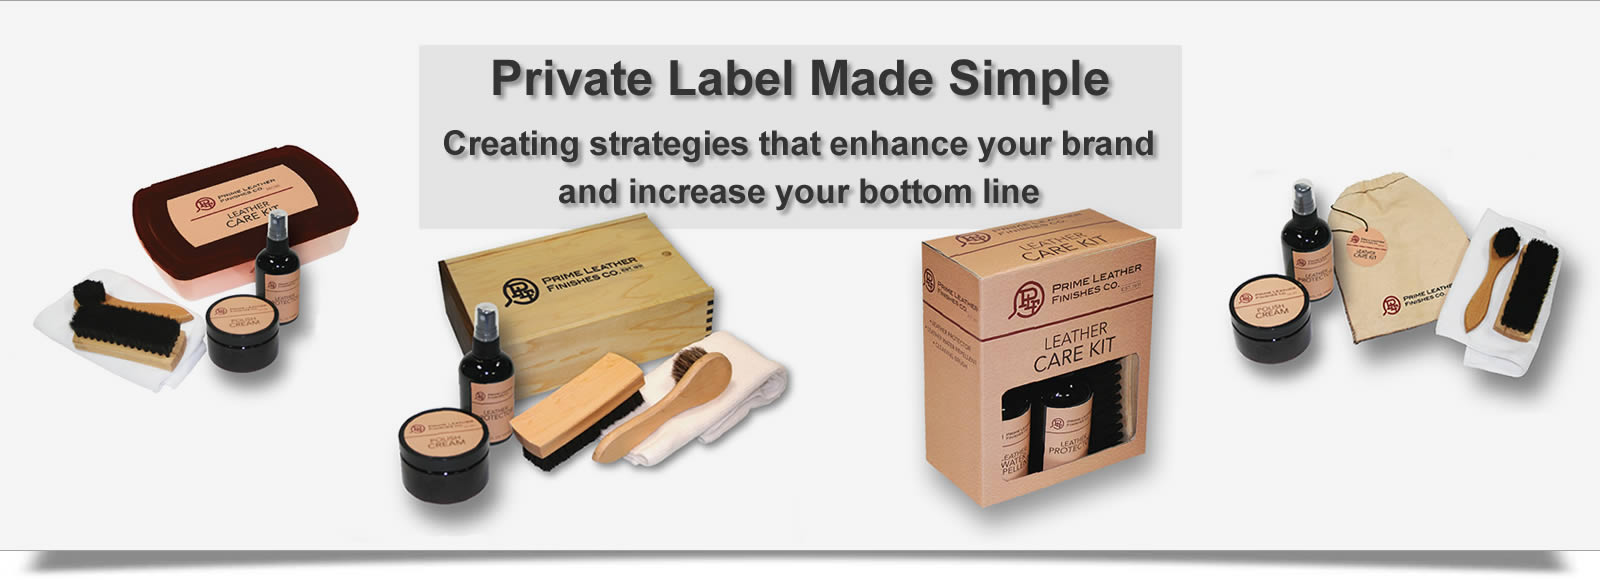 Our Private Label strategies enhance your brand and increase your bottom line